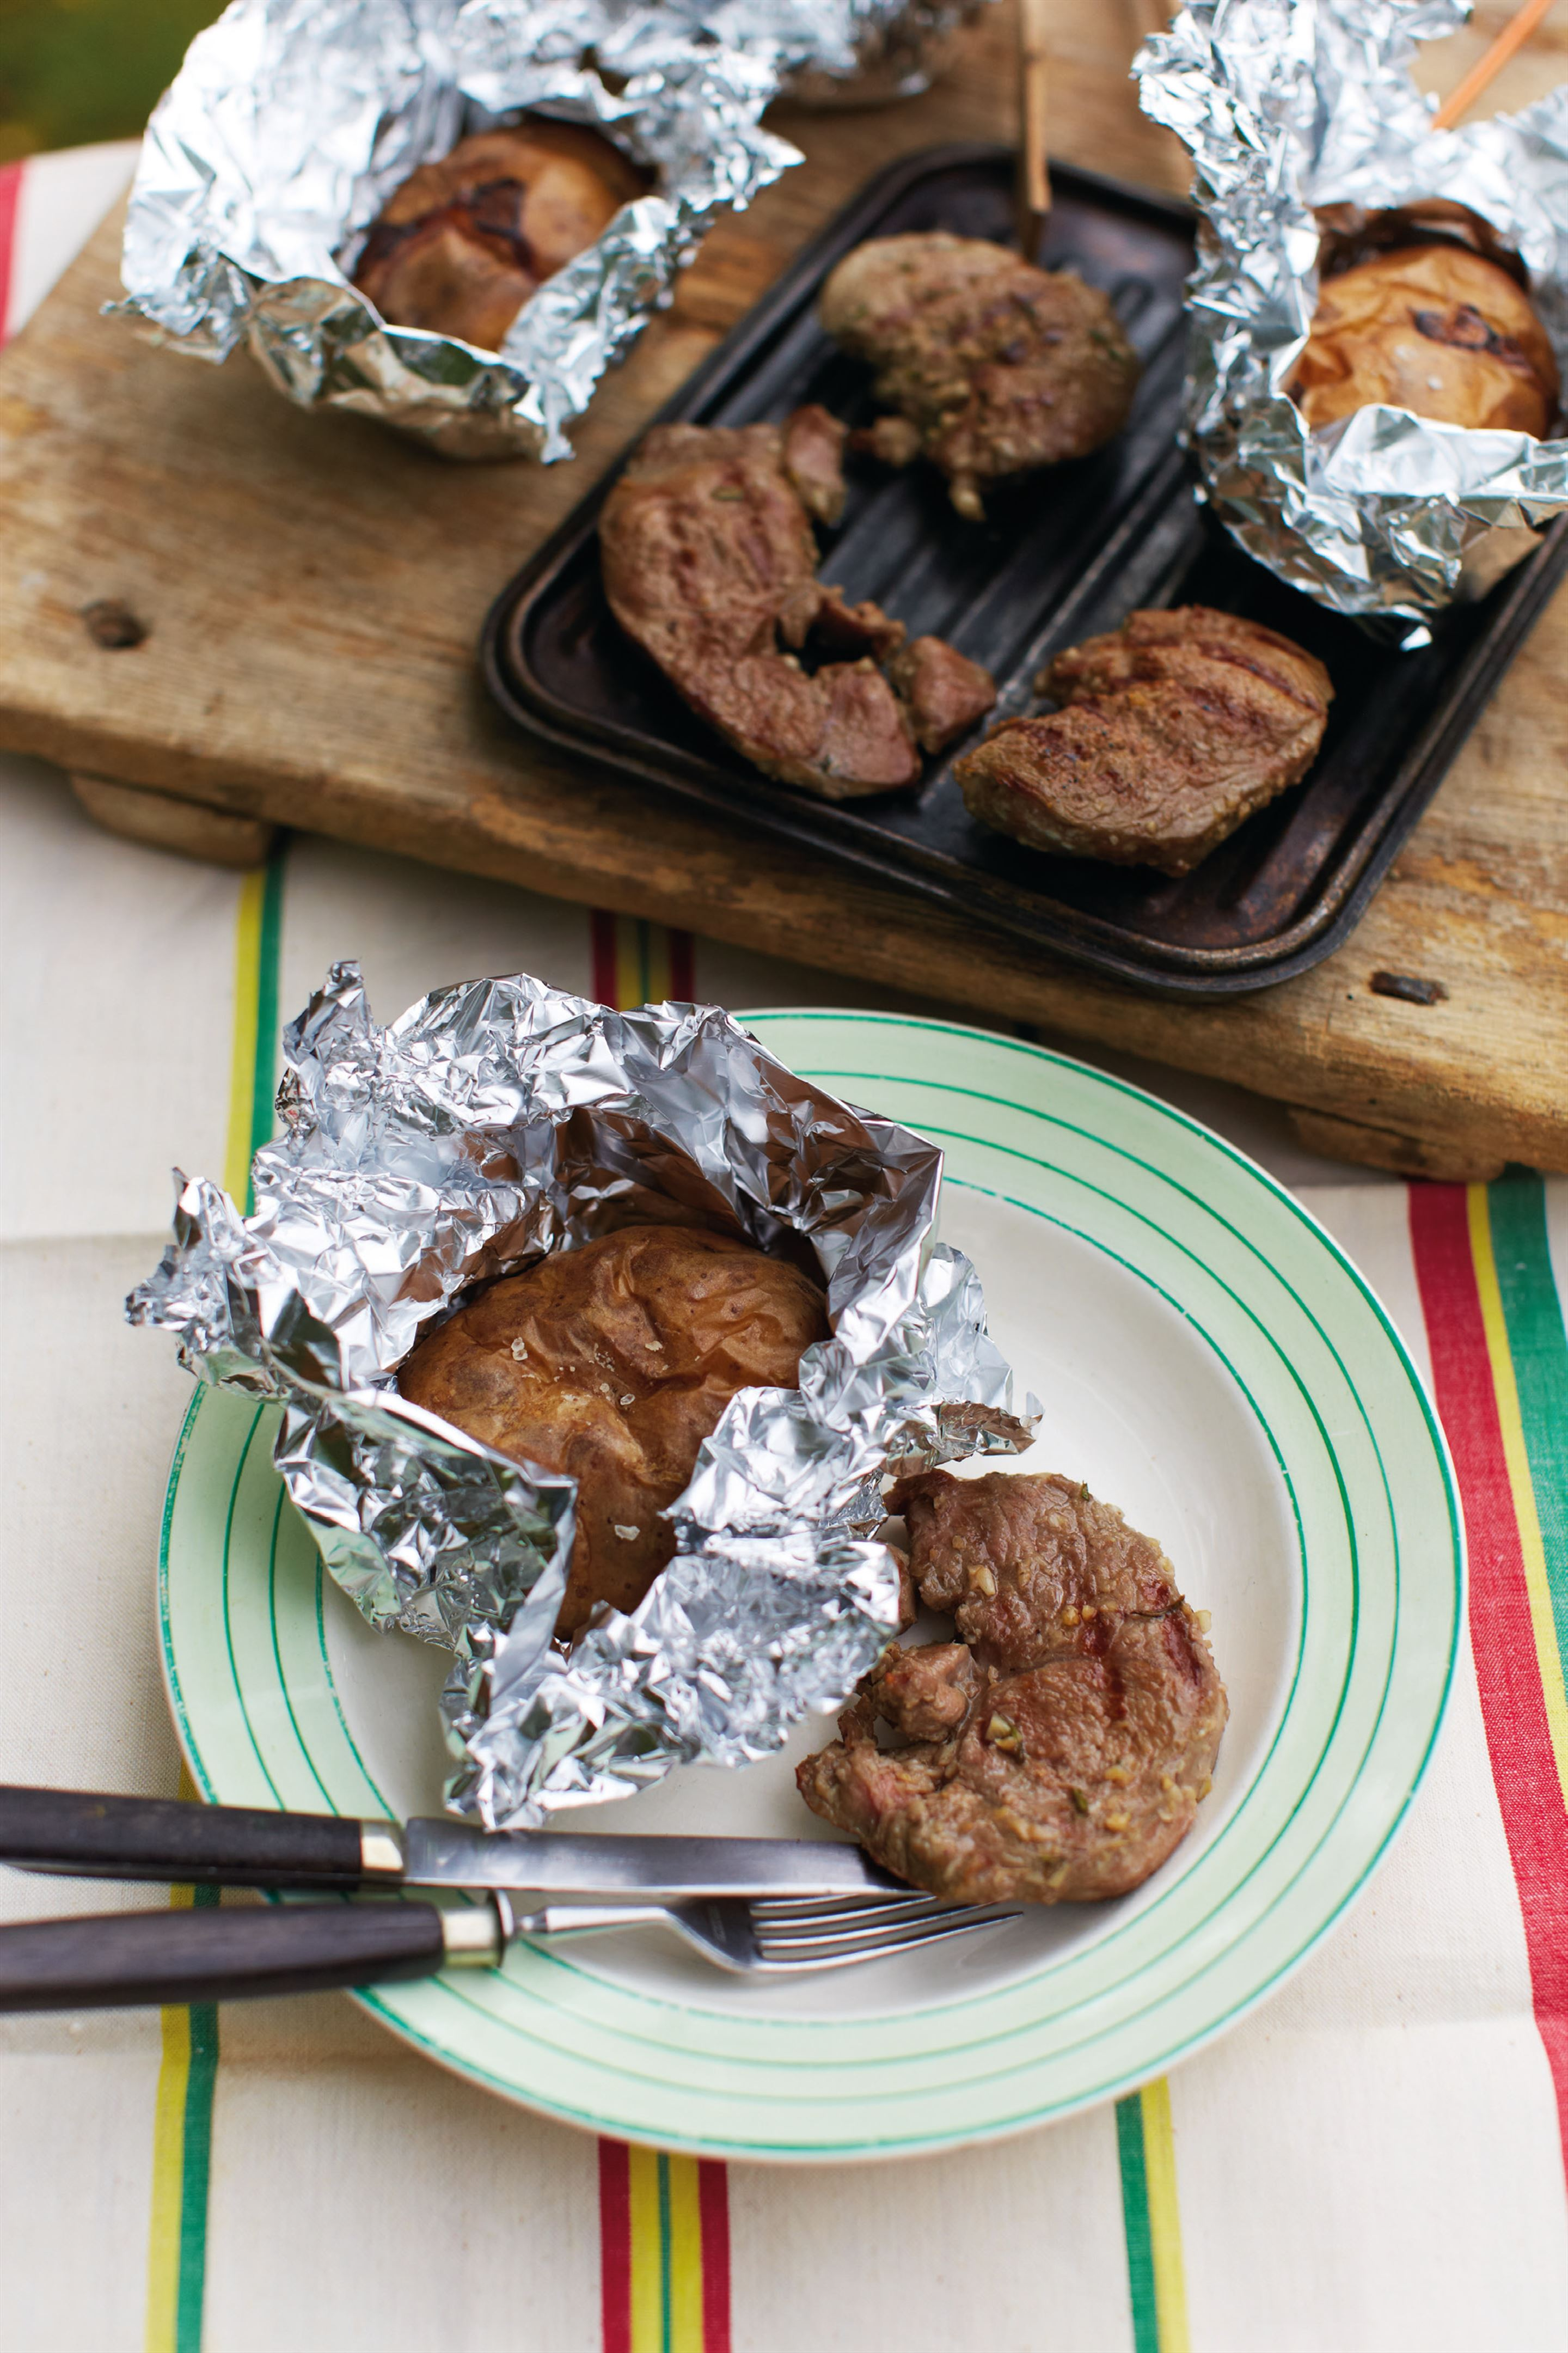 Salty and fragrant lamb steaks